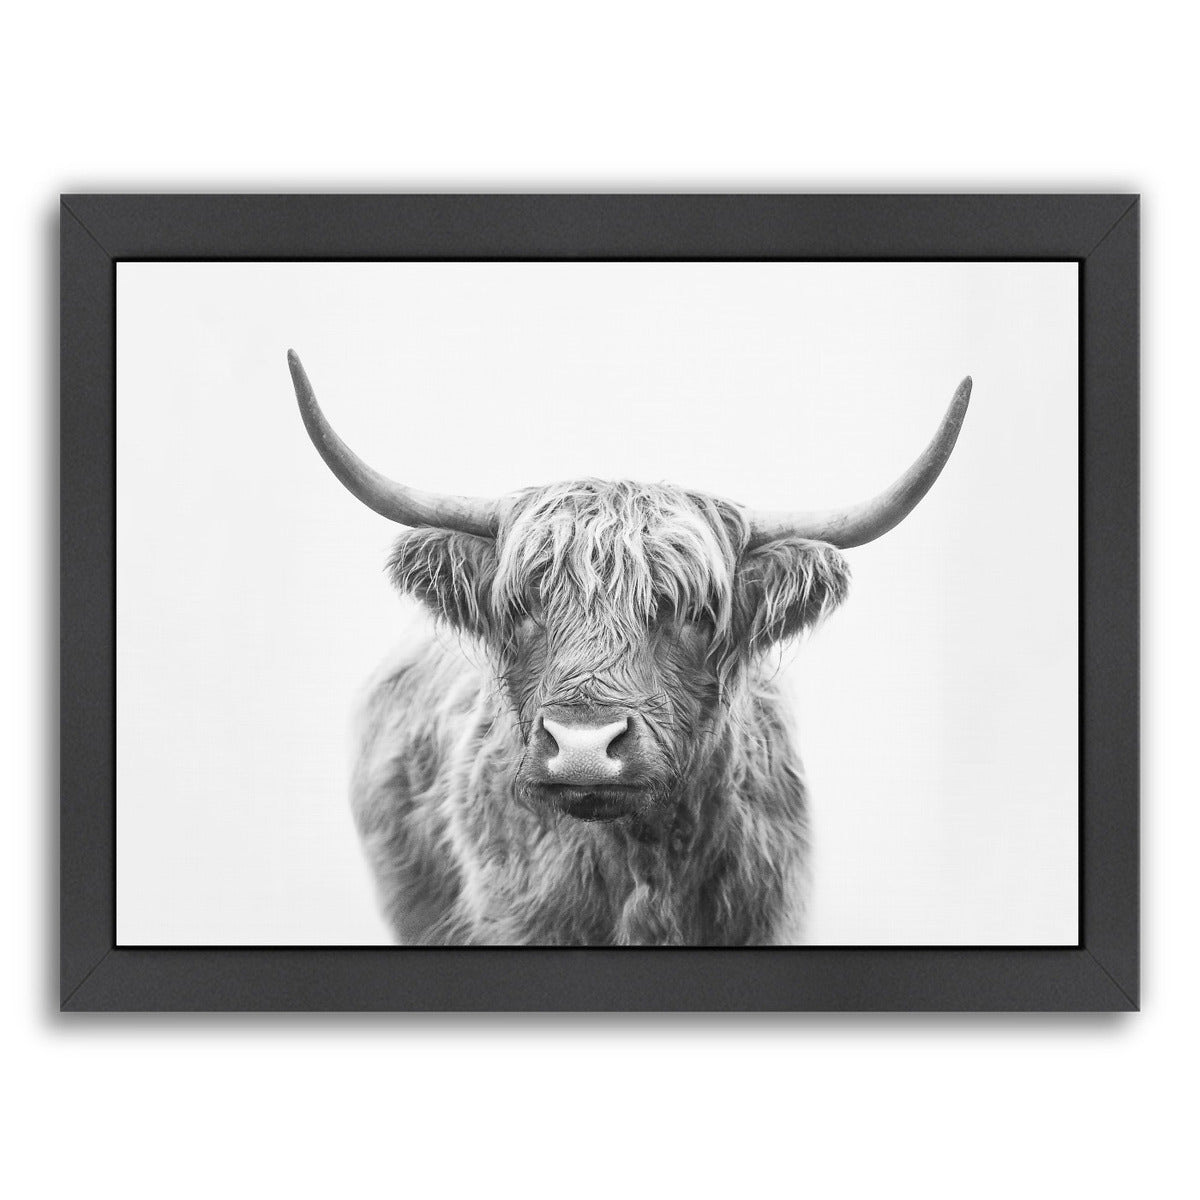 Highland Bull By Sisi And Seb - Black Framed Print - Wall Art - Americanflat